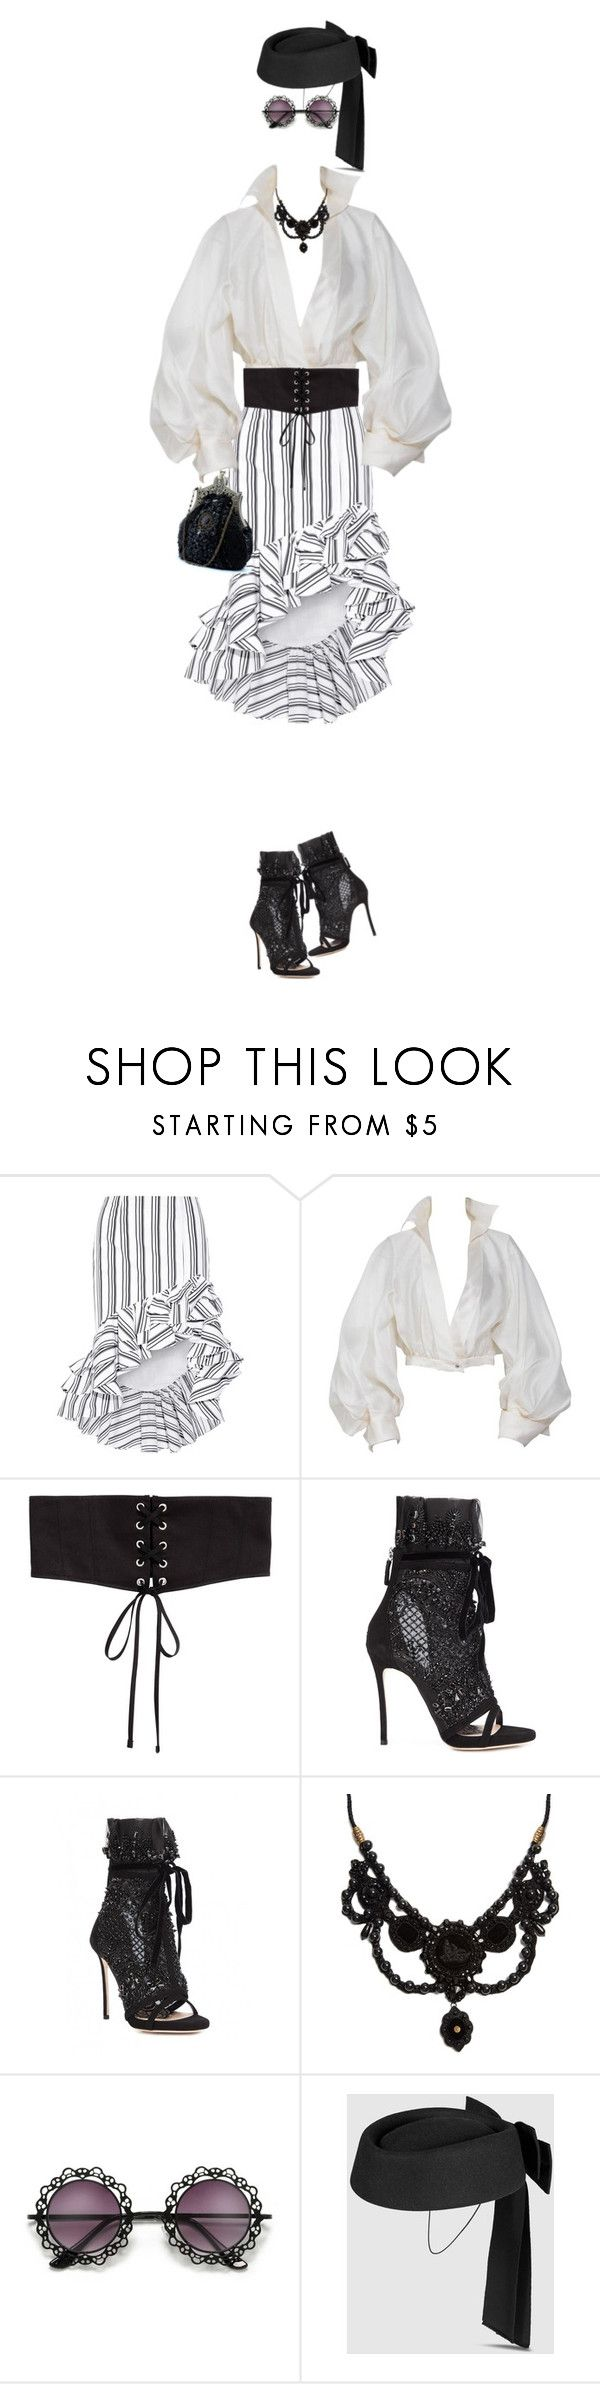 """Untitled #711"" by indirareeves on Polyvore featuring Caroline Constas, Claude Montana, Dsquared2 and Gucci"